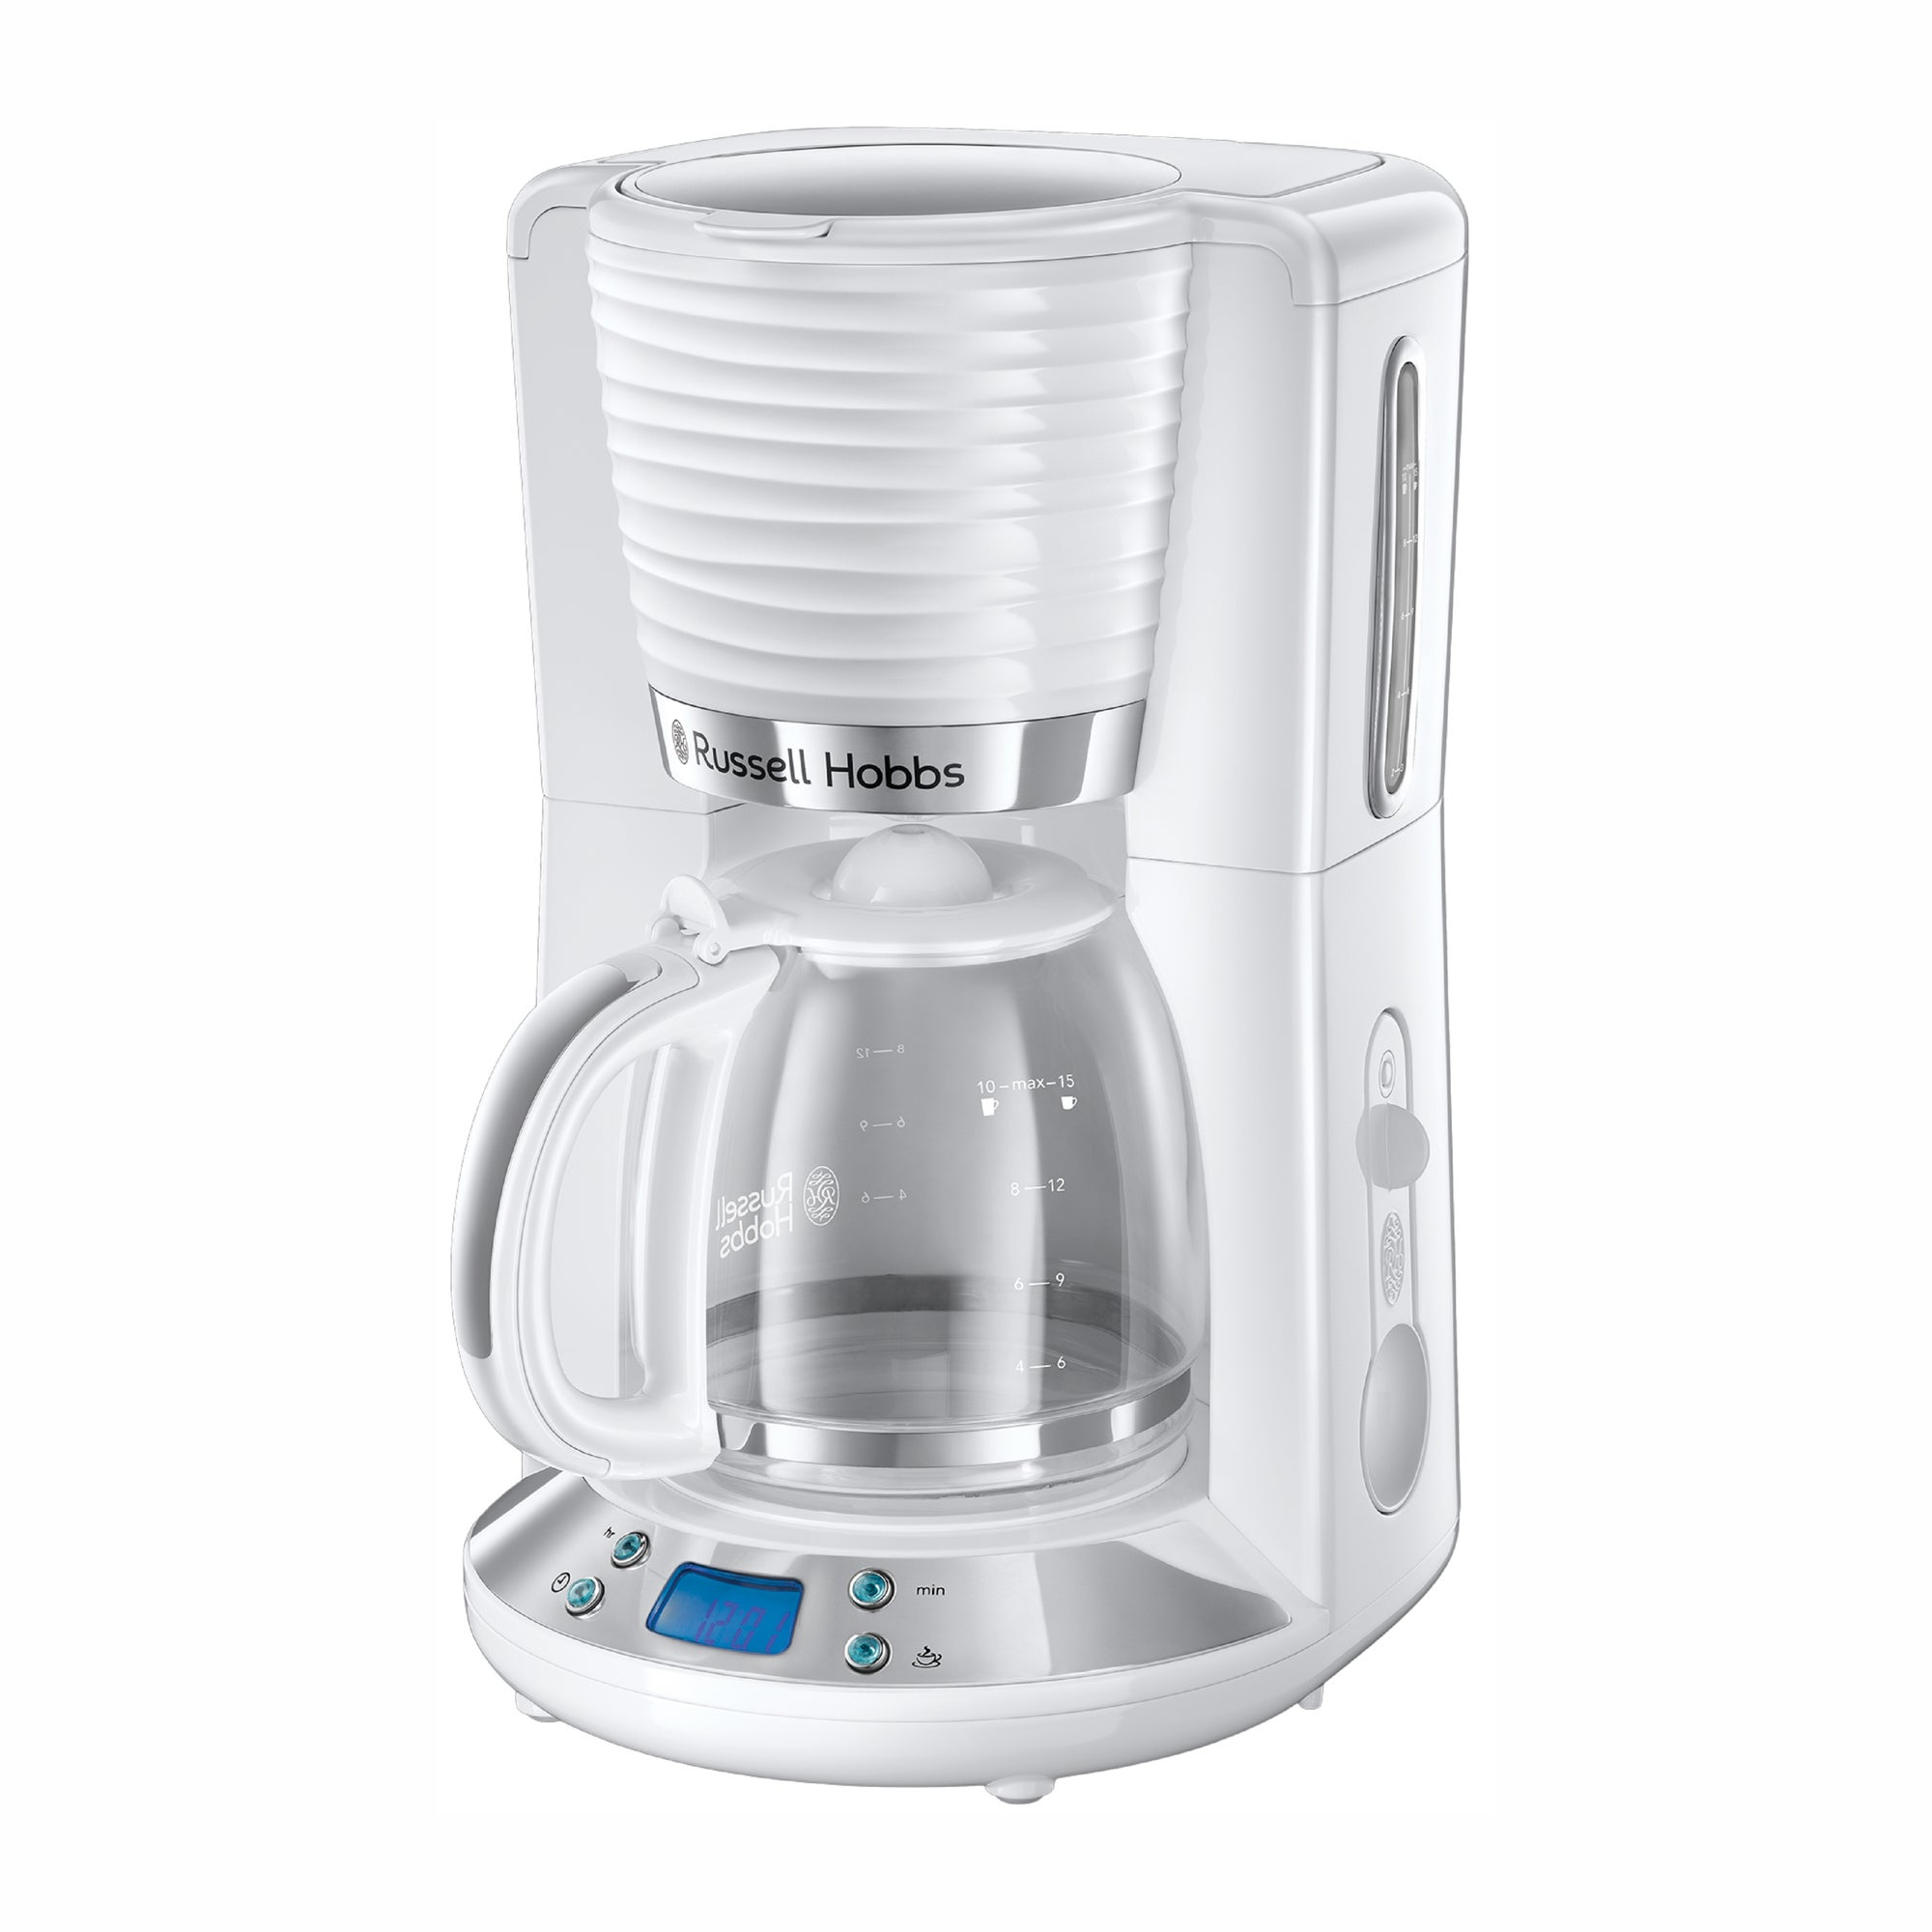 Russell Hobbs Inspire White Coffee Maker White